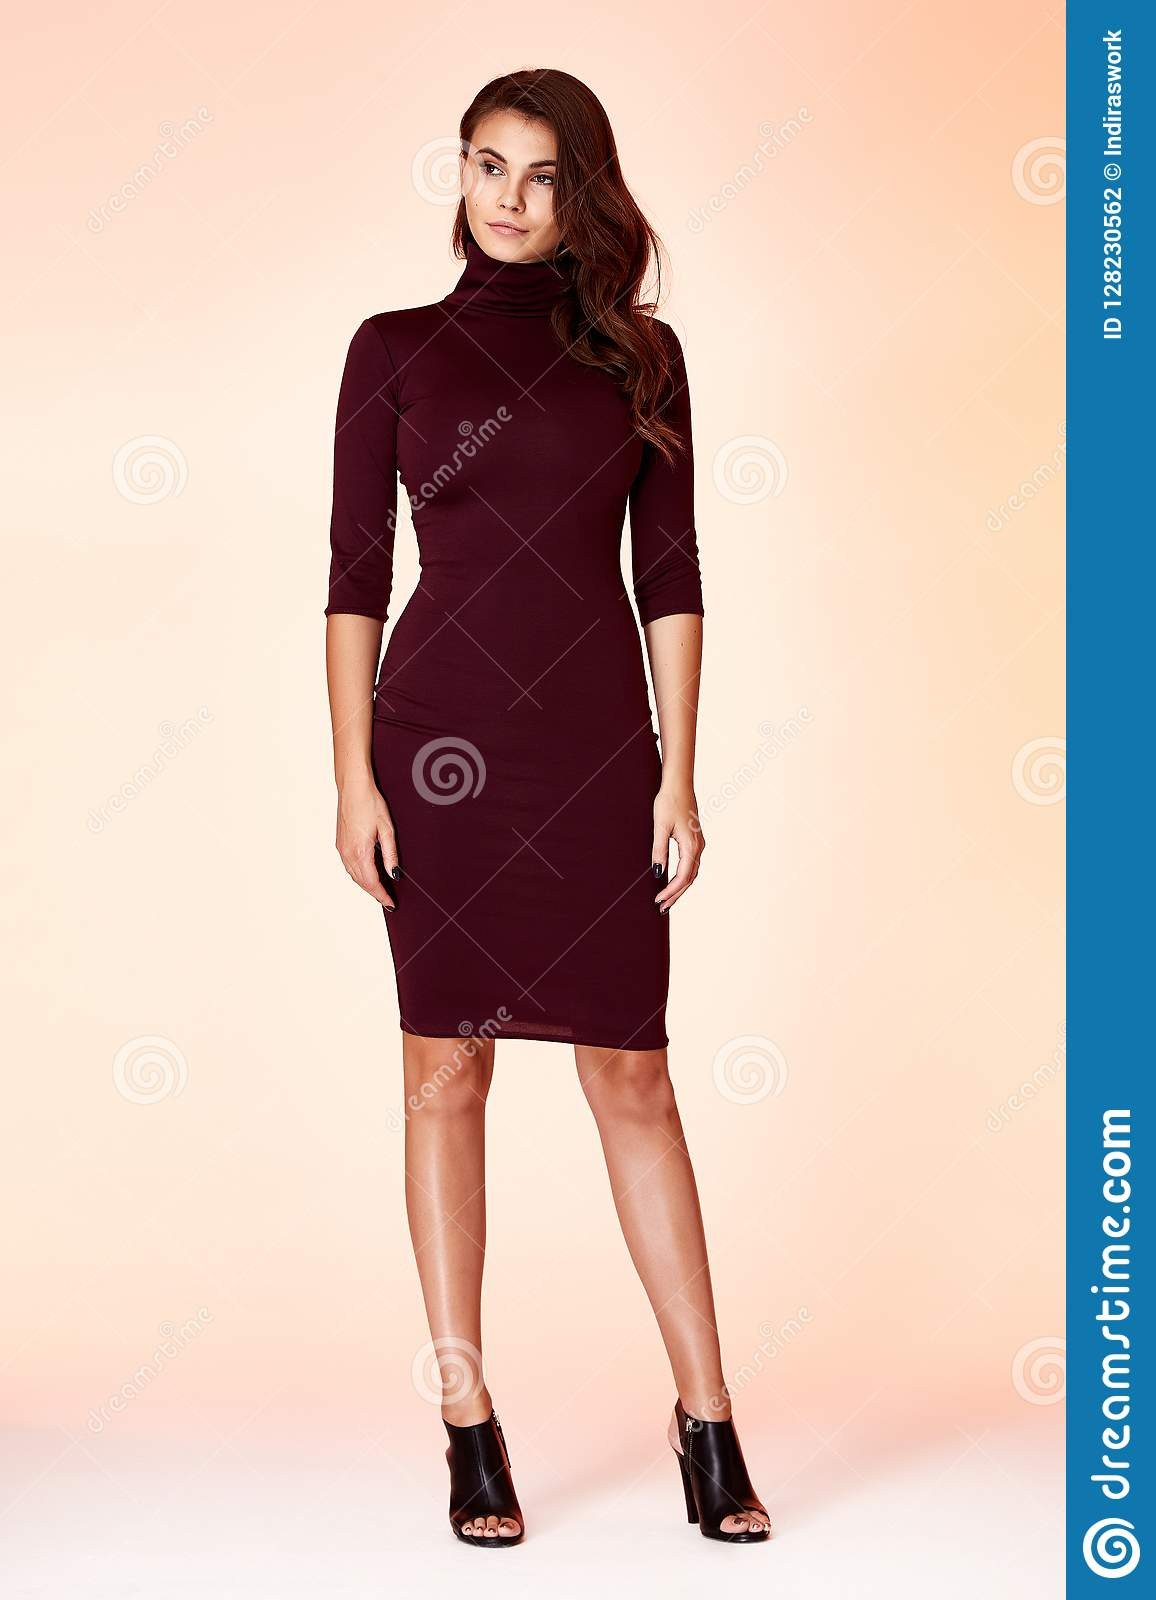 ac44829c13 Background studio beautiful woman lady spring autumn collection glamor  model fashion clothes wear casual style for office business uniform dress  pretty face ...